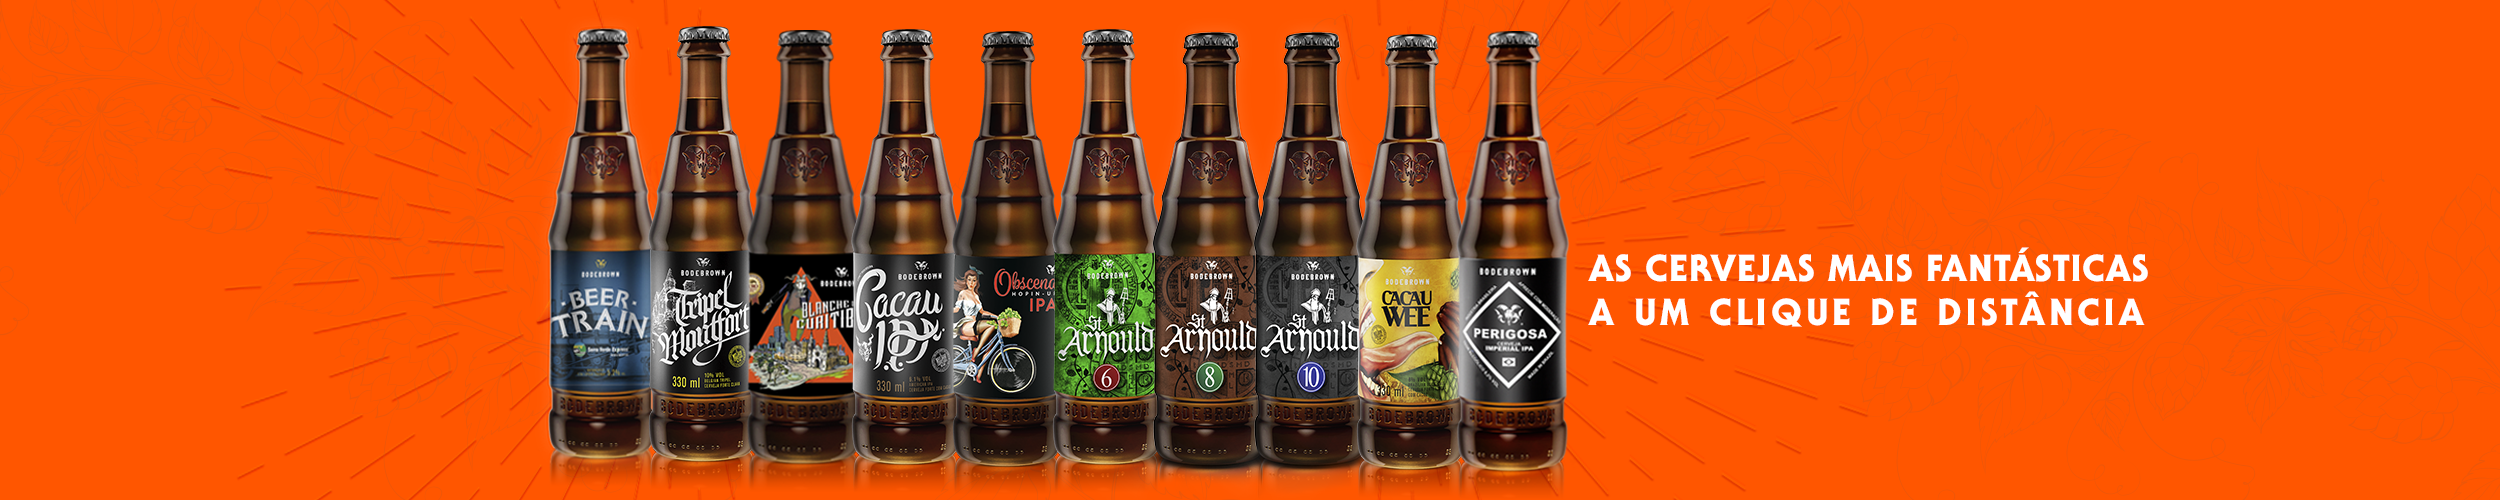 Cervejas Bodebrown